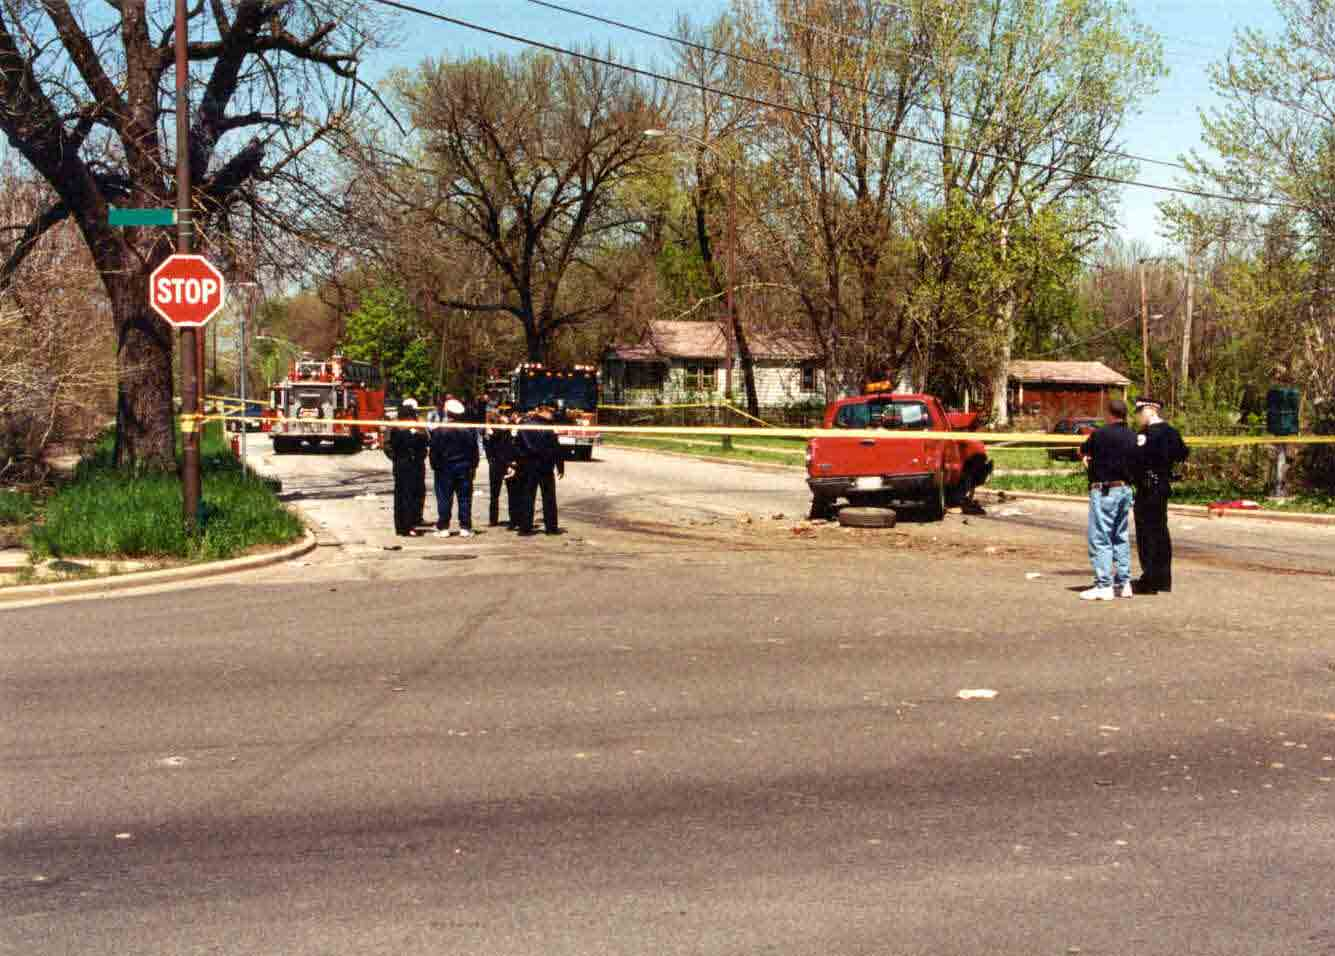 Photograph of the intersection and final resting places of the vehicles involved in this incident.